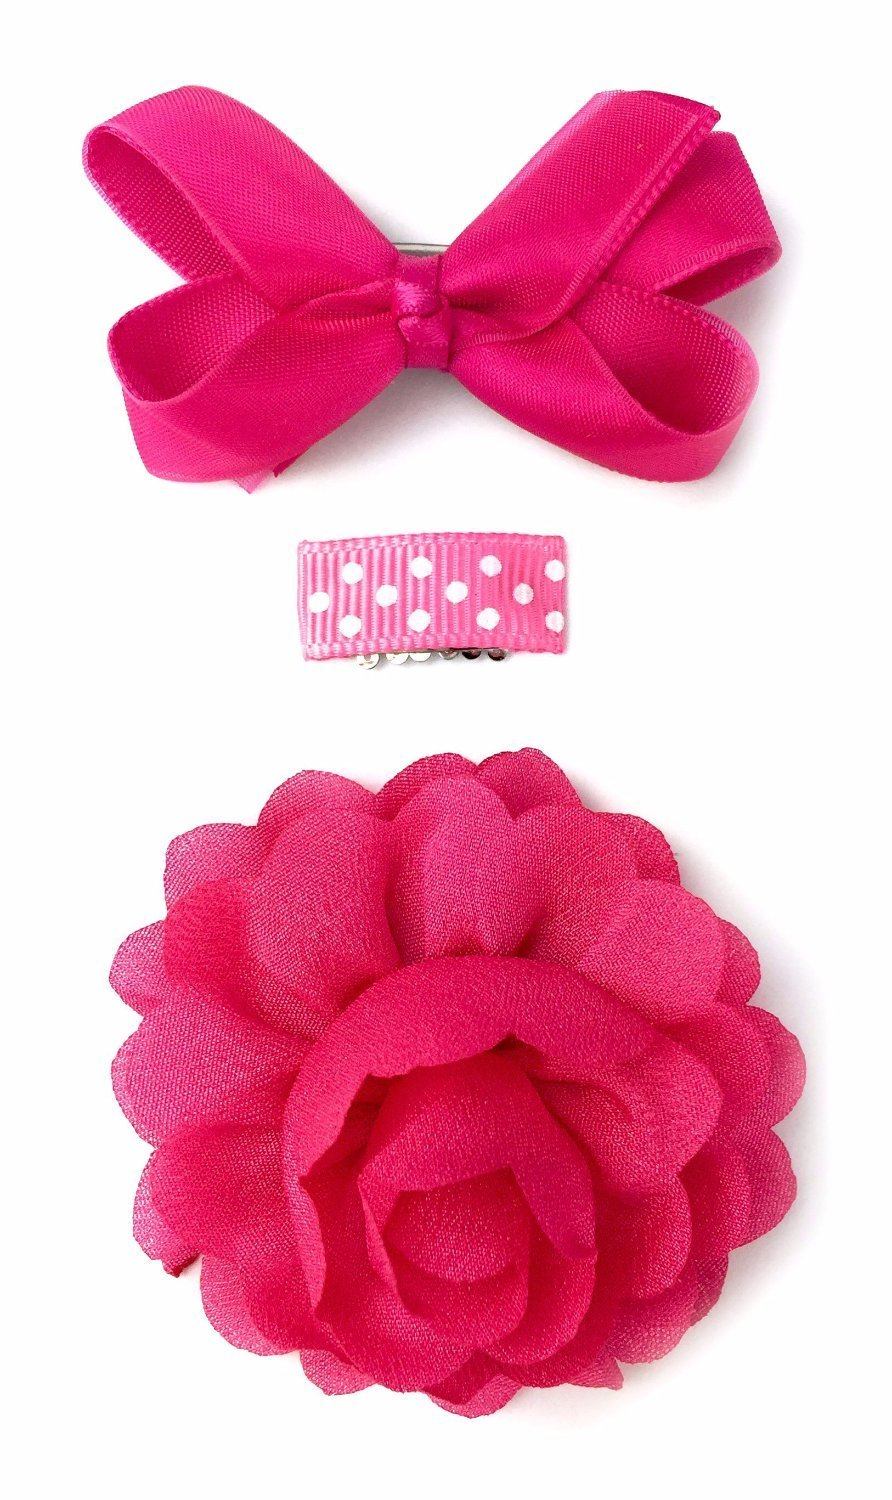 Baby Wisp Mini Latch Clip Satin Boutique Bow Grosgrain Ribbon Clip Flower Accessory Baby Girl Gift Set (Fuchsia)